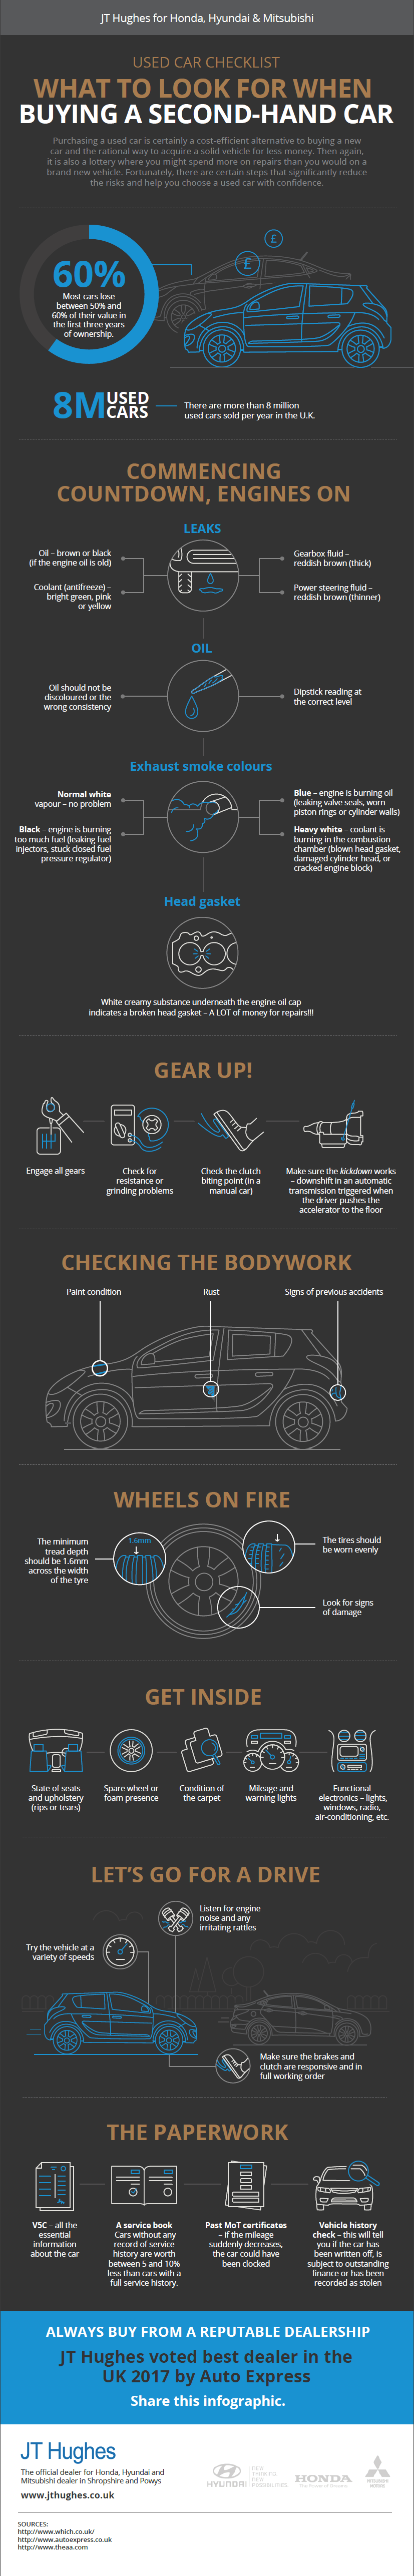 Infographic - Buying a second hand car